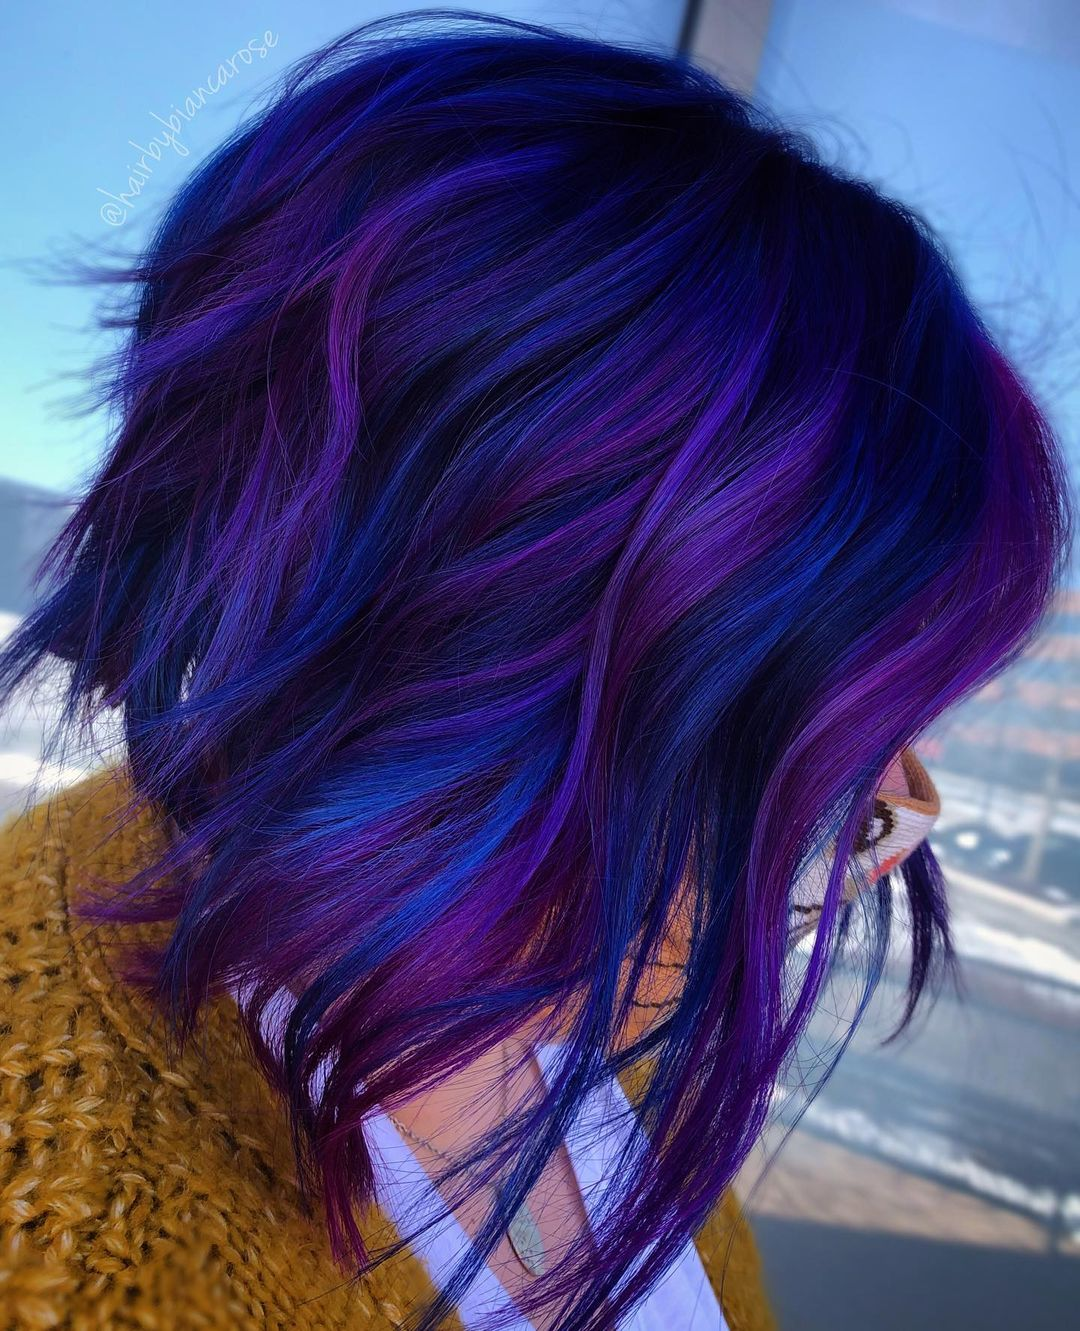 Purple and Blue Highlights on Short Hair